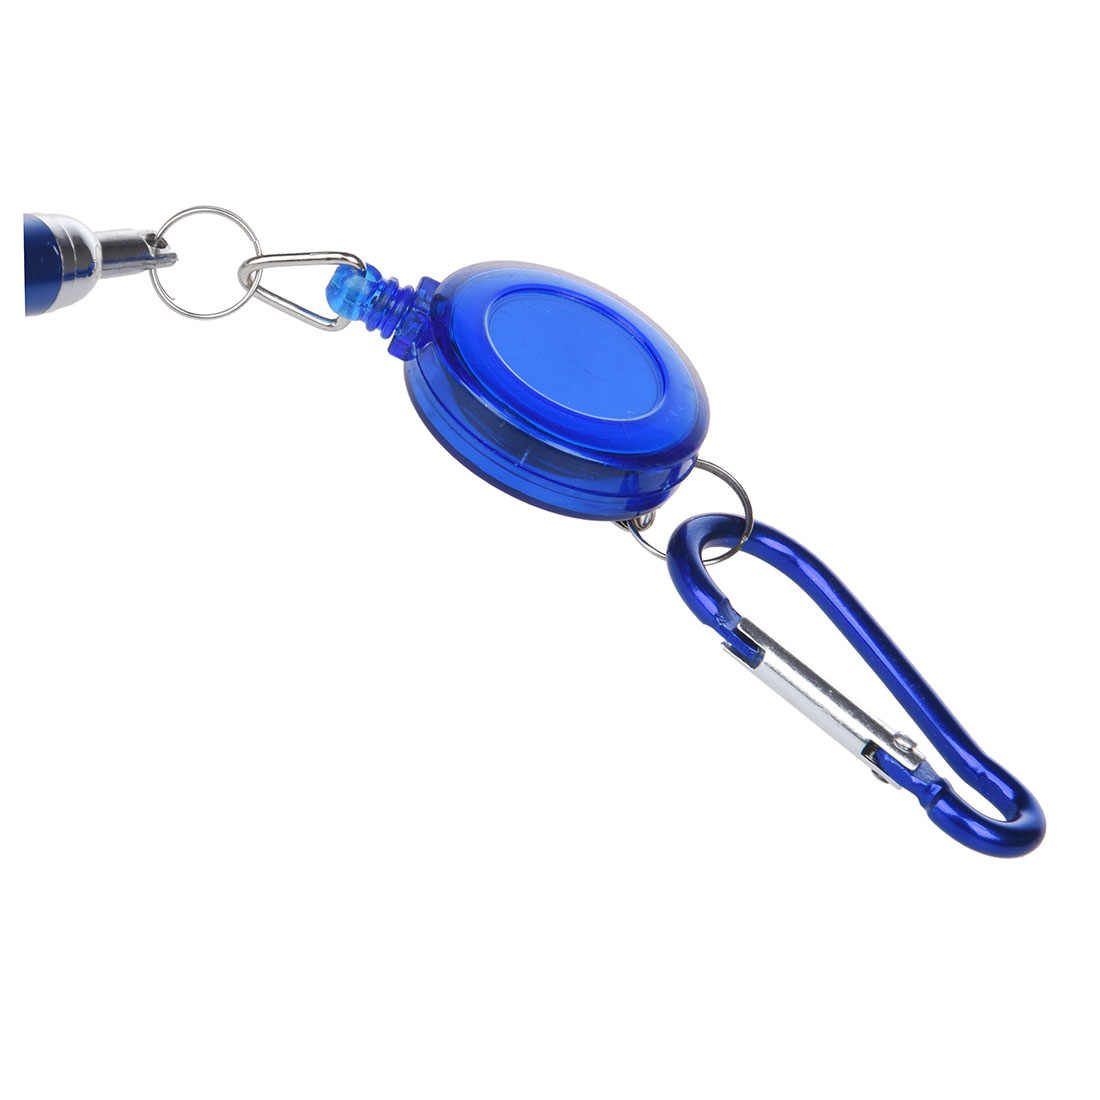 Blue Retractable Badge Reel Pen Belt Clip & Carabiner / Secure Metal Clip for Easy Fasten to Pocket, Belt, Waistband or Lanyard